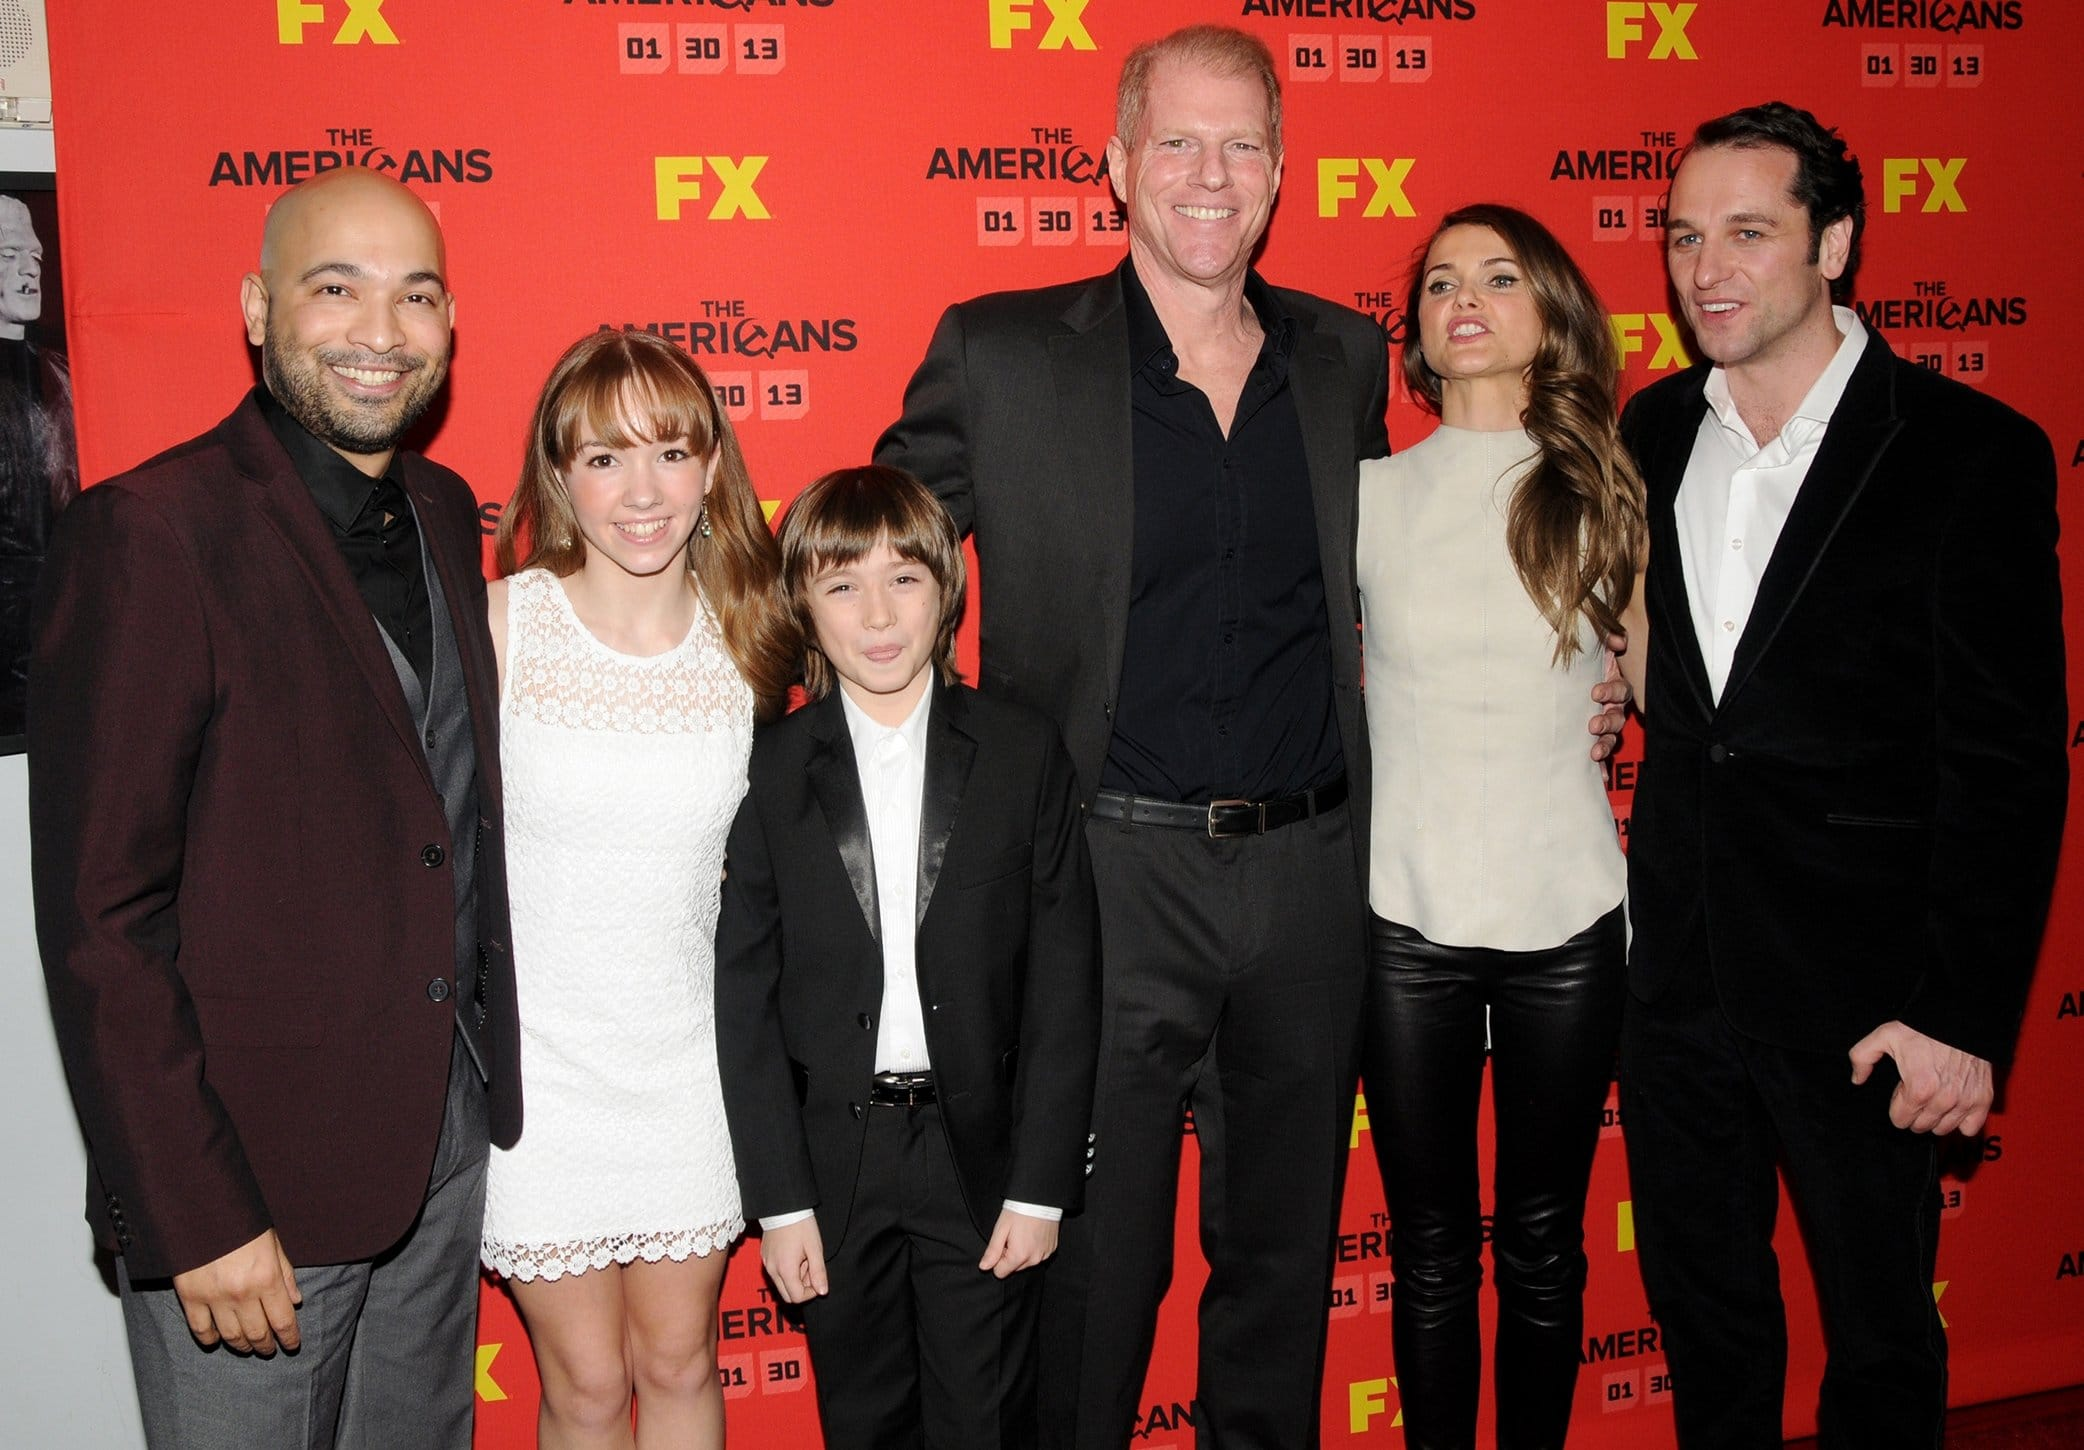 Maximiliano Hernández, Holly Taylor, Keidrich Sellati, Noah Emmerich, Keri Russell, and Matthew Rhys star in the American period spy thriller television series The Americans